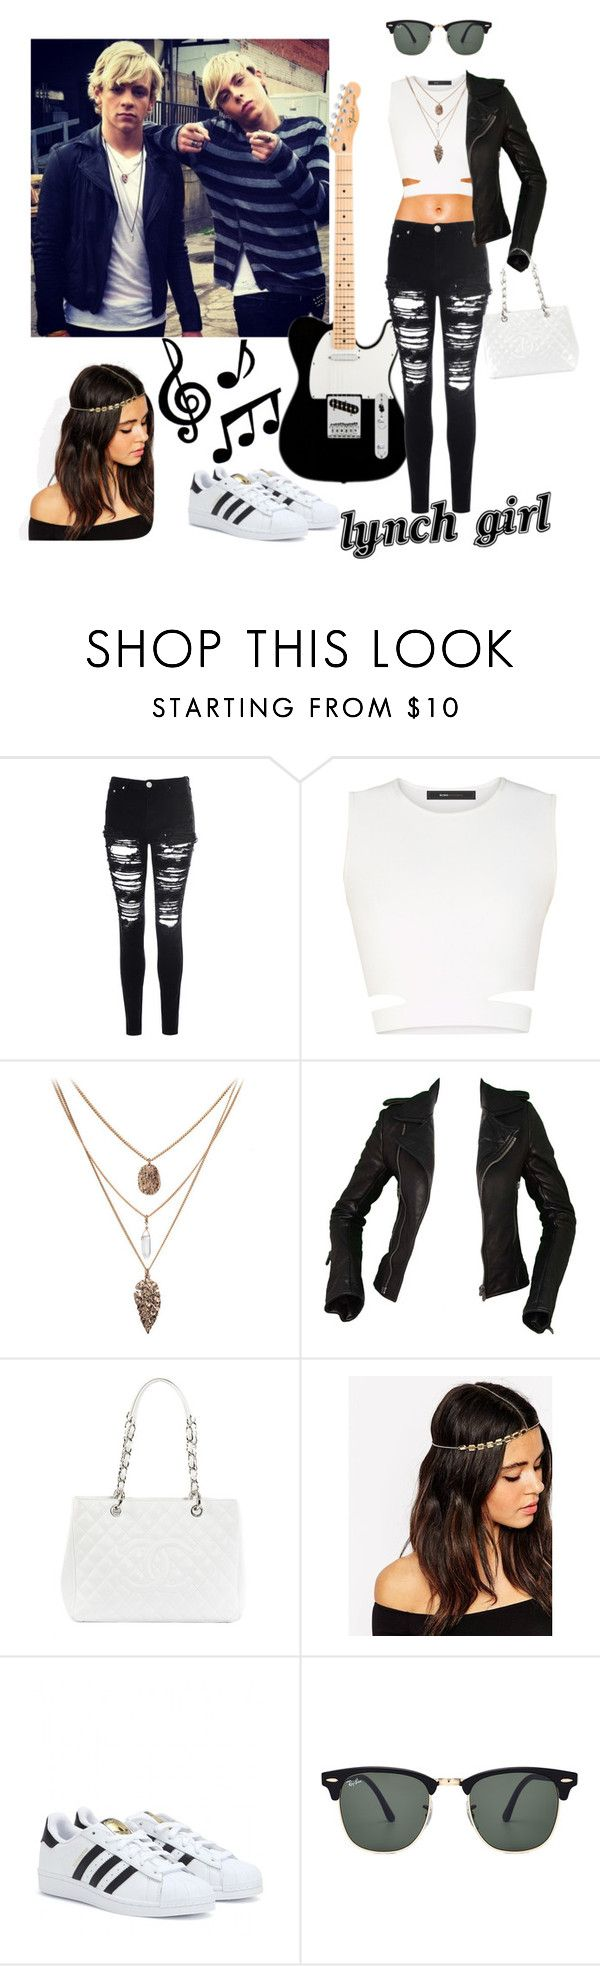 """""""Let's go to the cinema"""" by clariworld ❤ liked on Polyvore featuring Glamorous, BCBGMAXAZRIA, Balenciaga, Chanel, ASOS, adidas and Ray-Ban"""